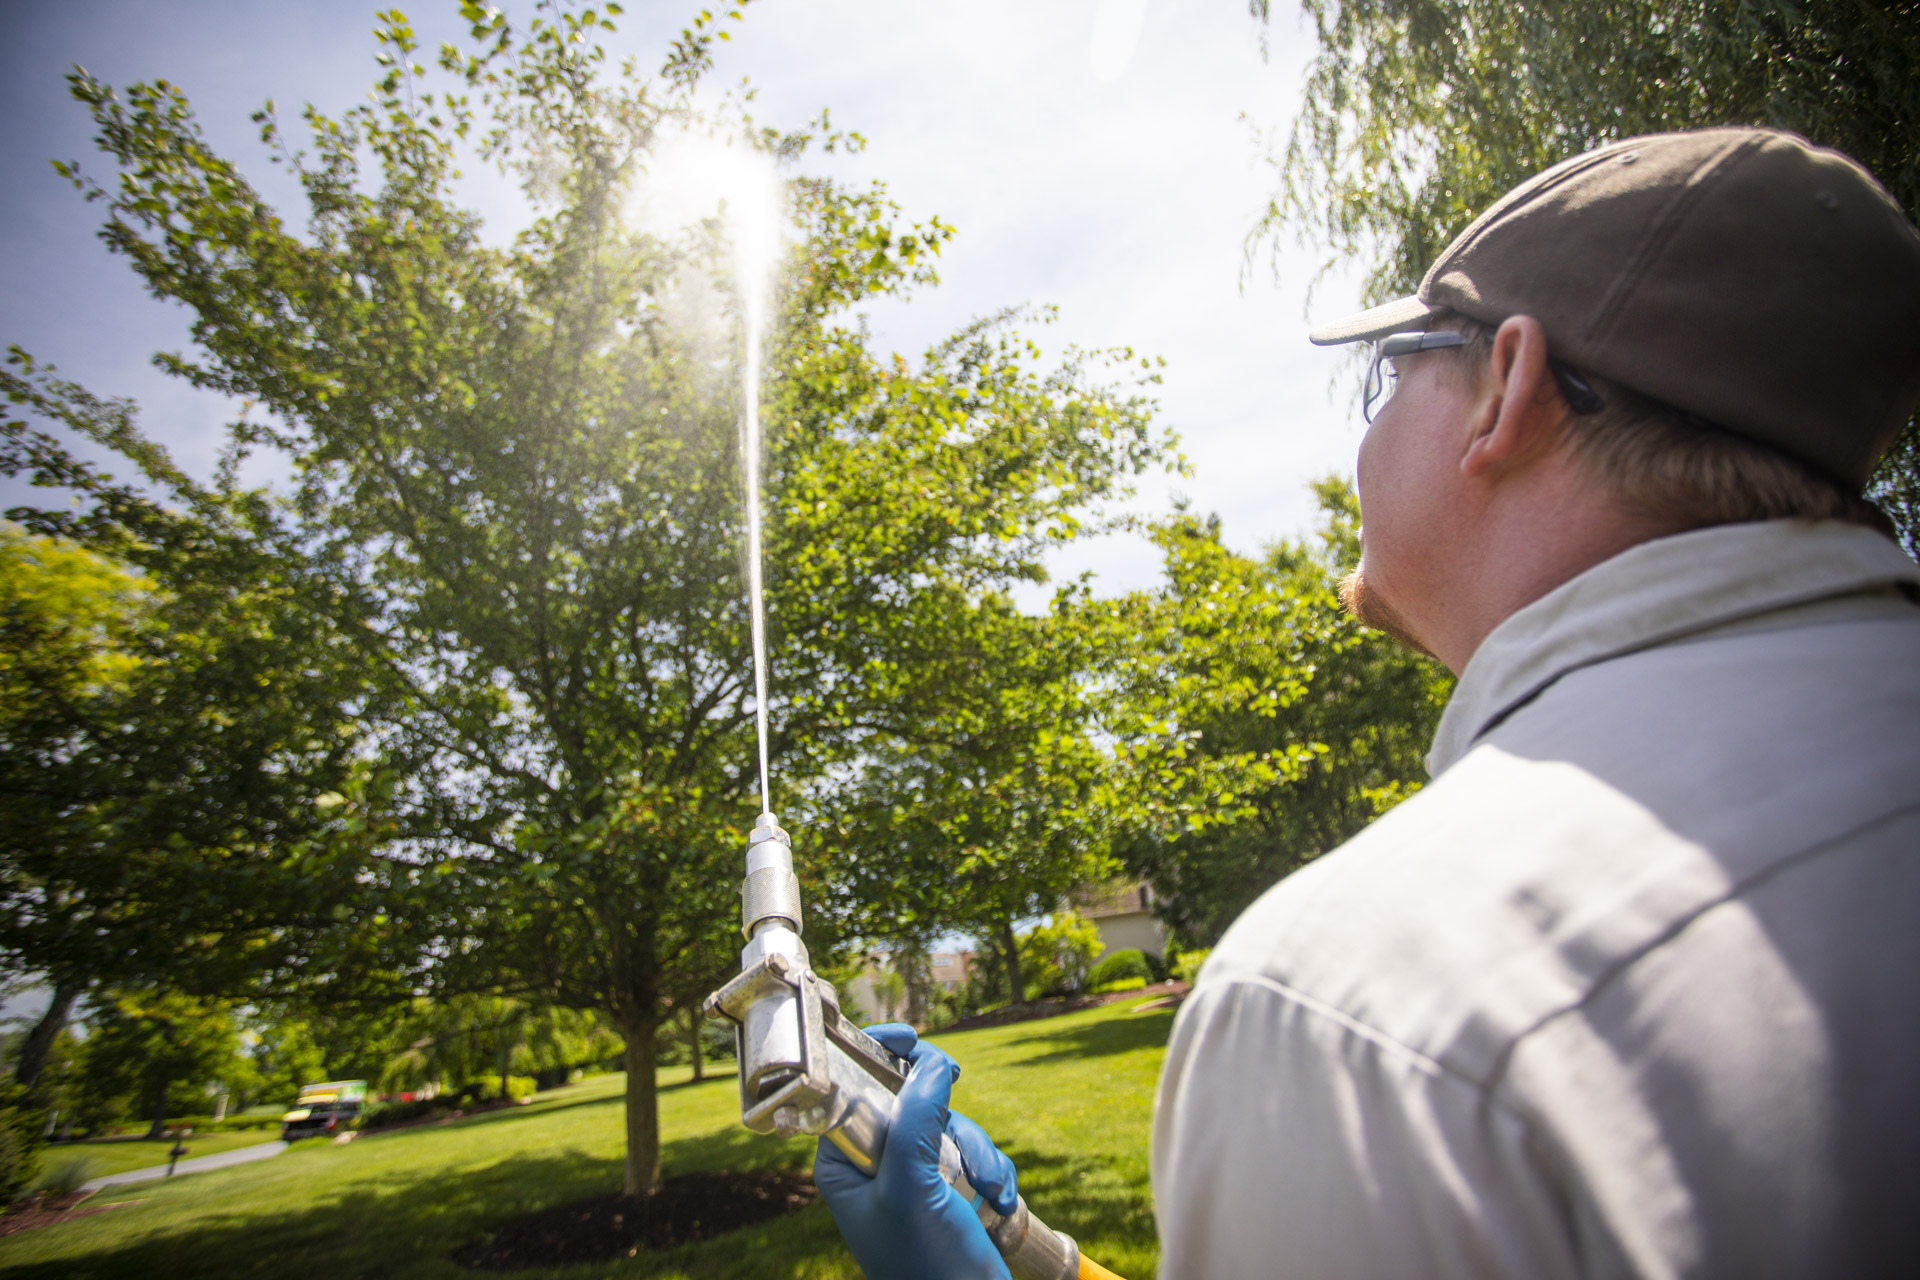 tree spraying service